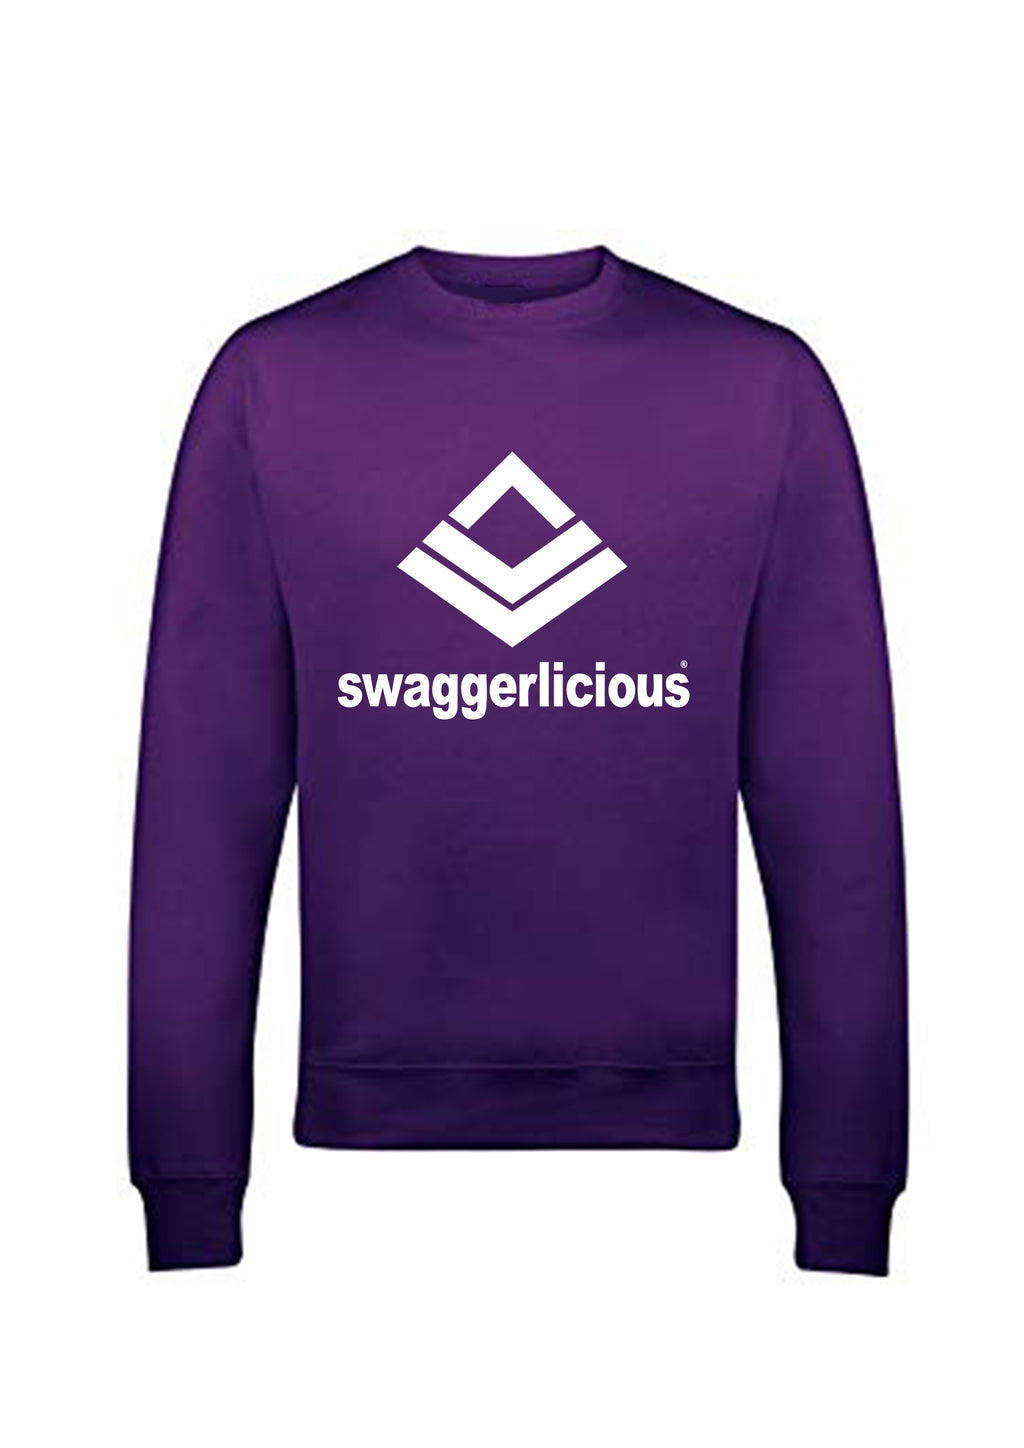 Swaggerlicious Classic Sports Purple Sweatshirt - swaggerlicious-clothing.com